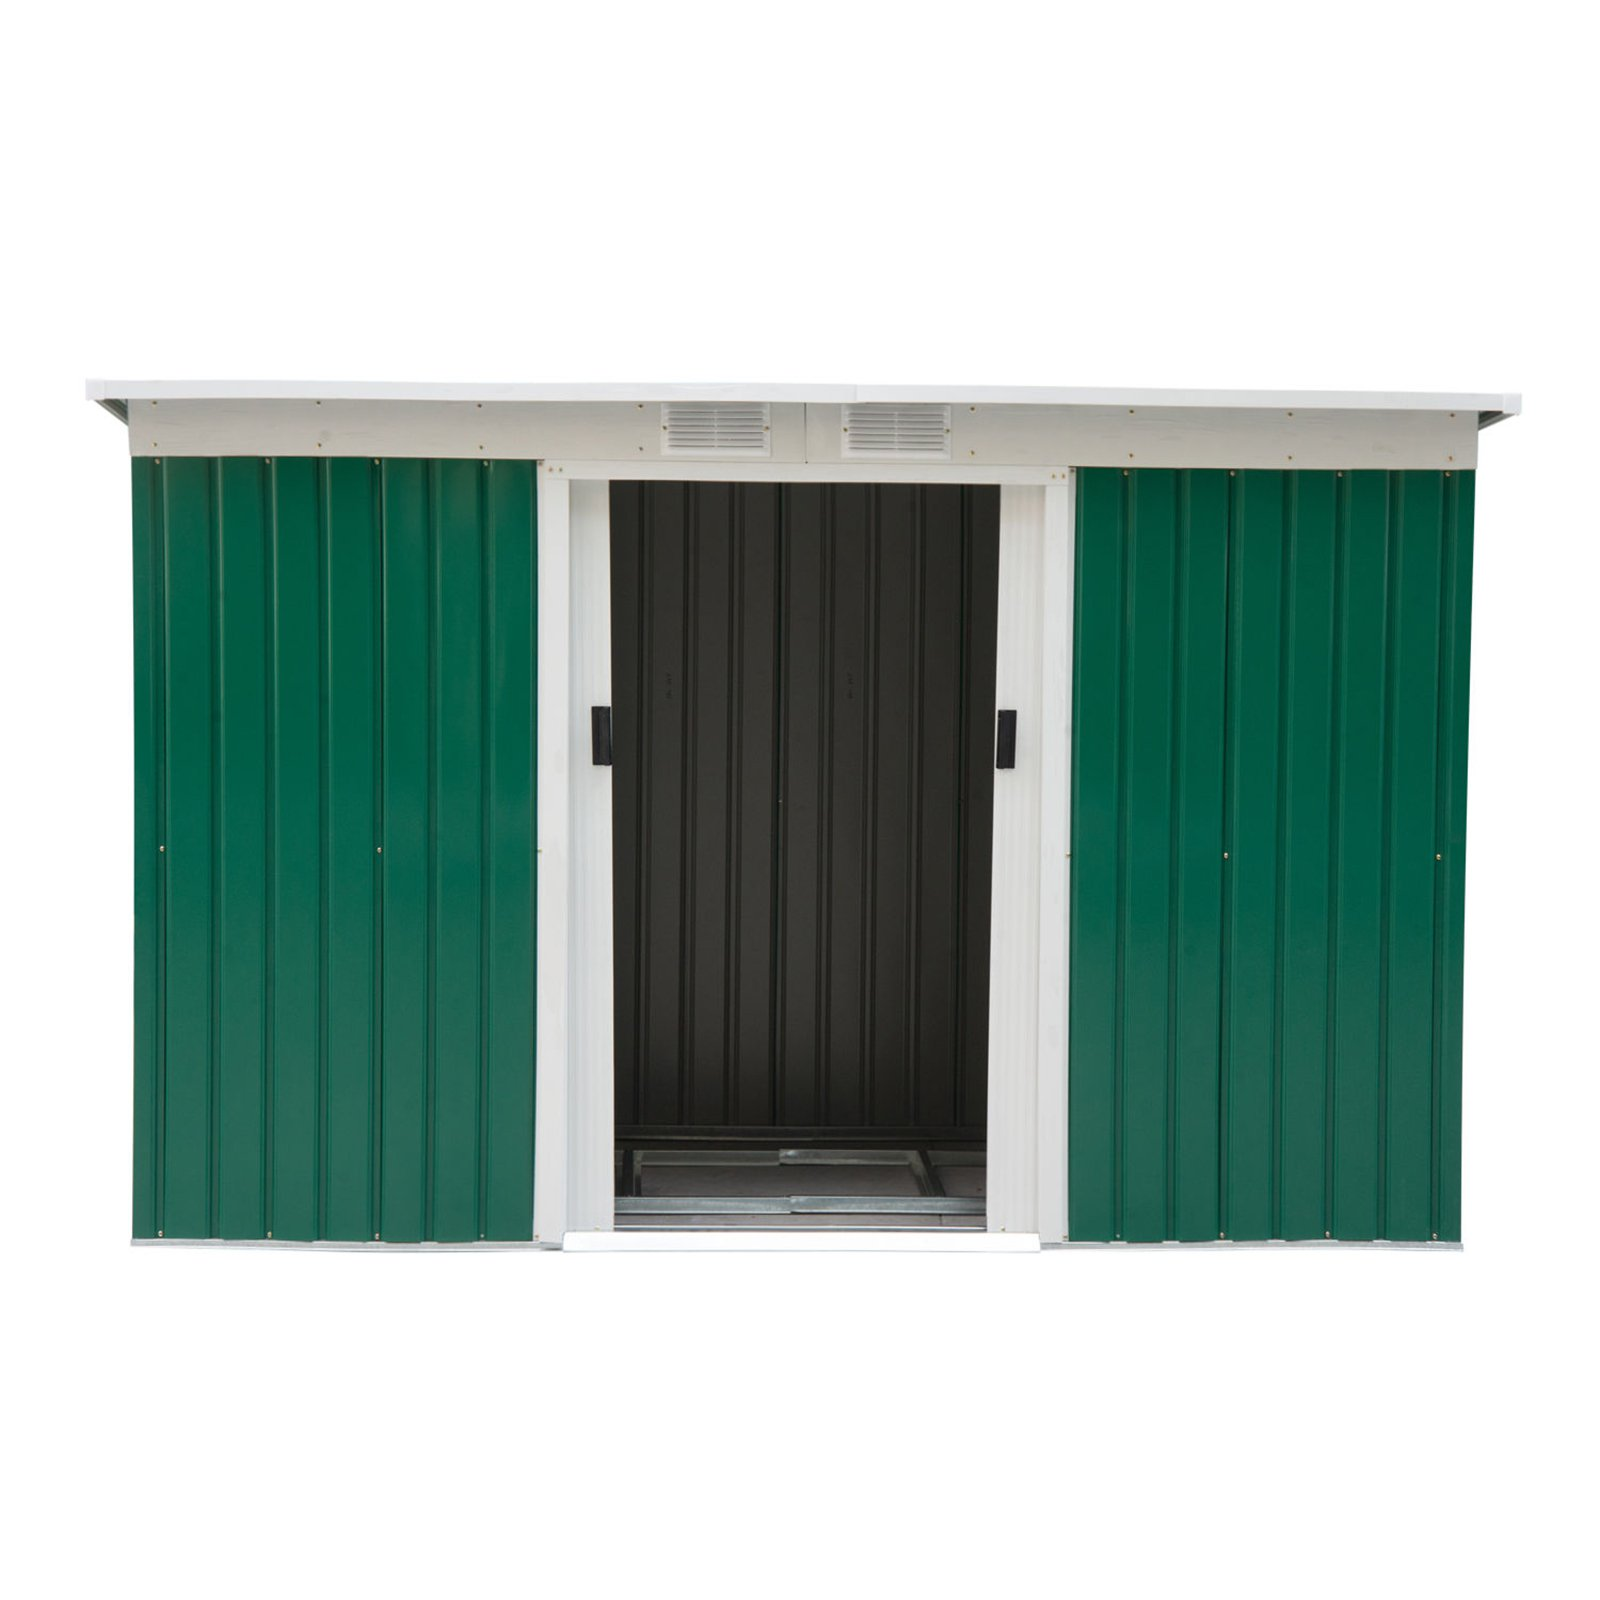 Outsunny 9 x 4 ft Outdoor Metal Garden Storage Shed Walmartcom